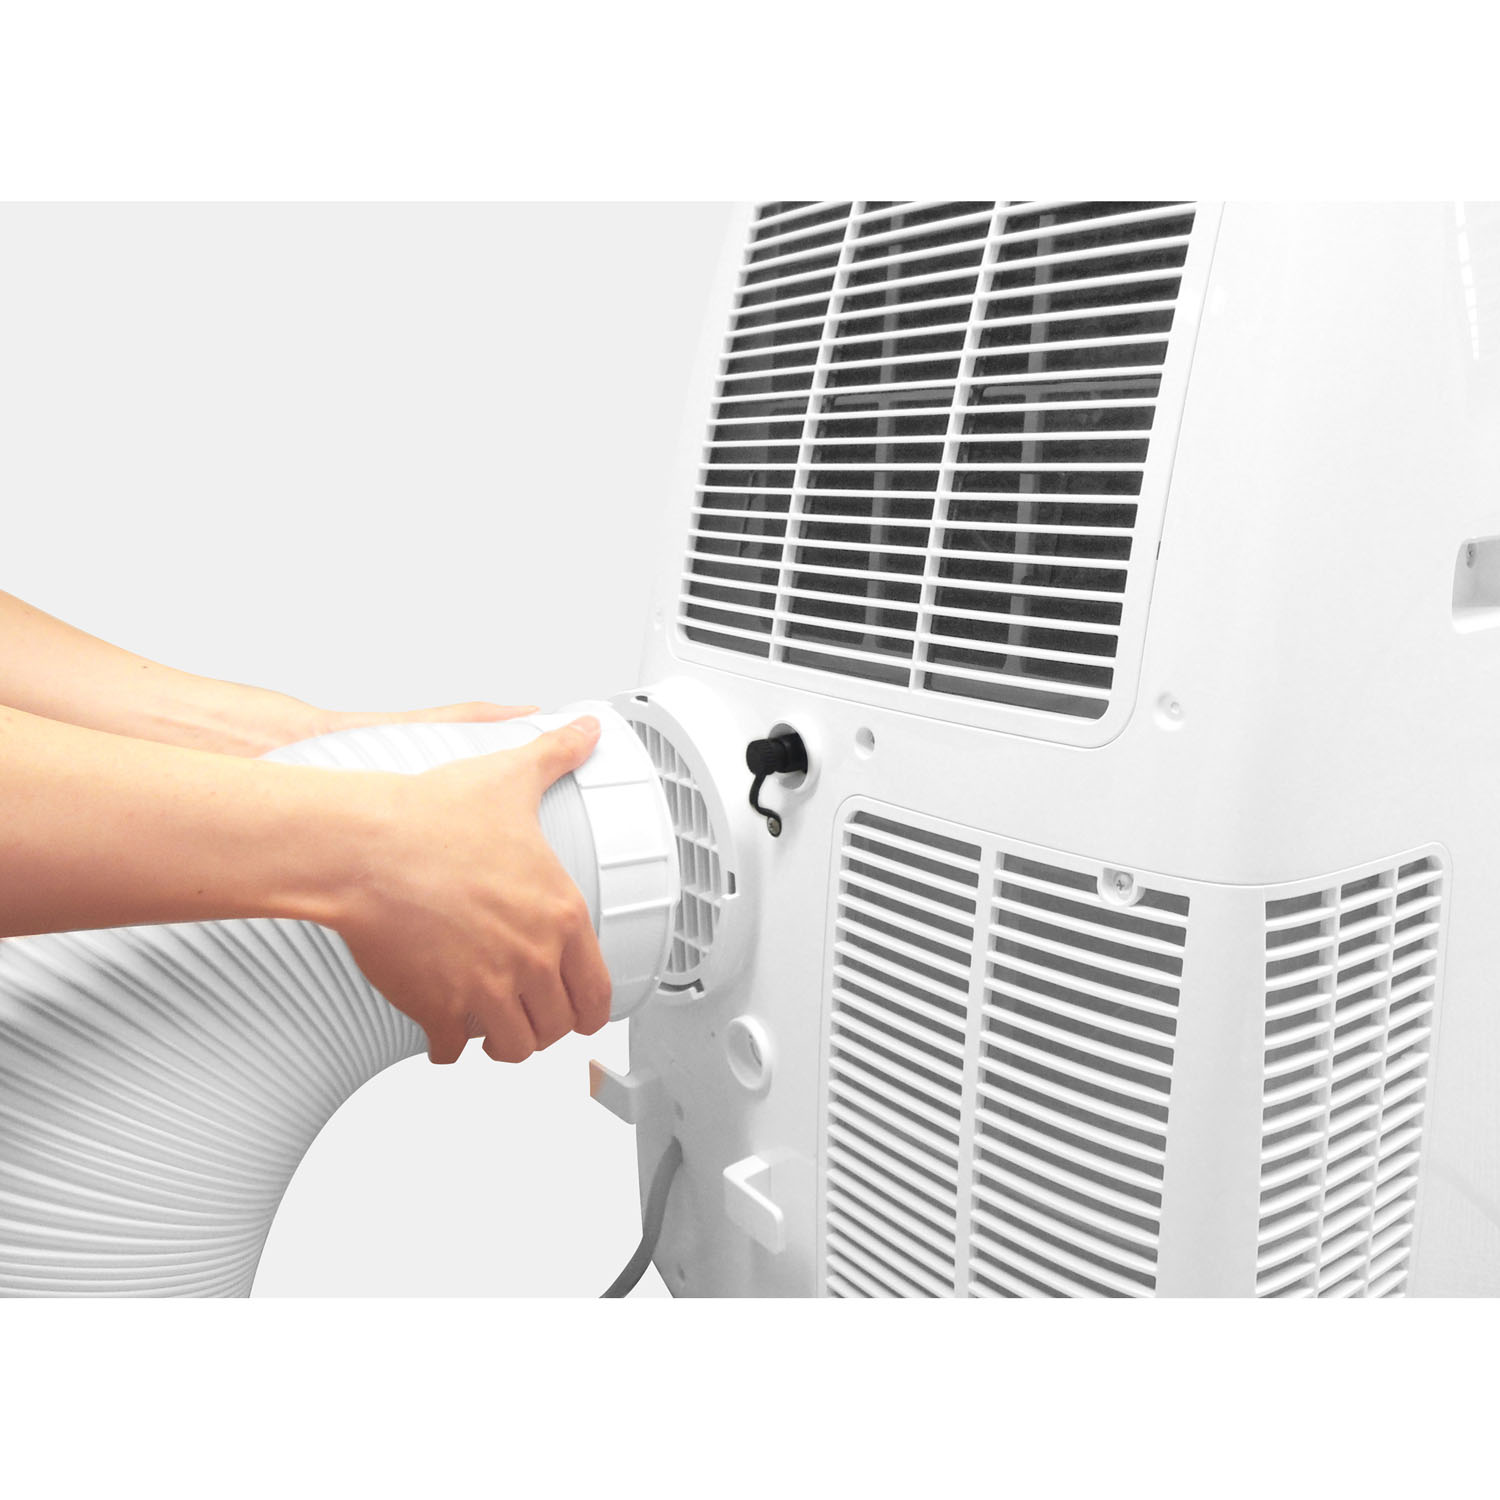 Portable Body Fans : Portable air conditioner with dehumidifier fan for rooms